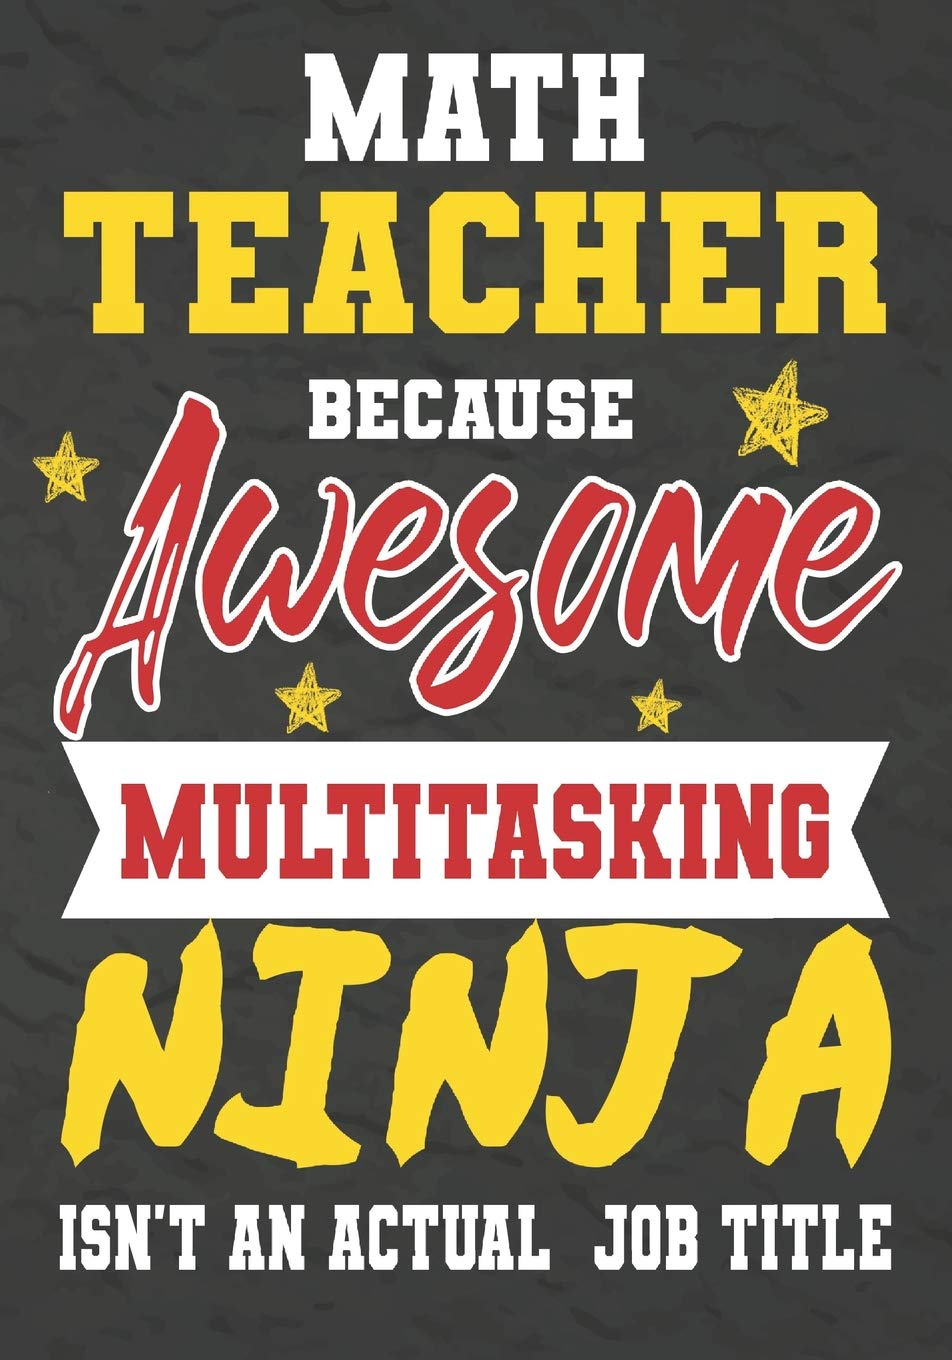 Amazon.com: Math Teacher Because Awesome Multitasking Ninja ...